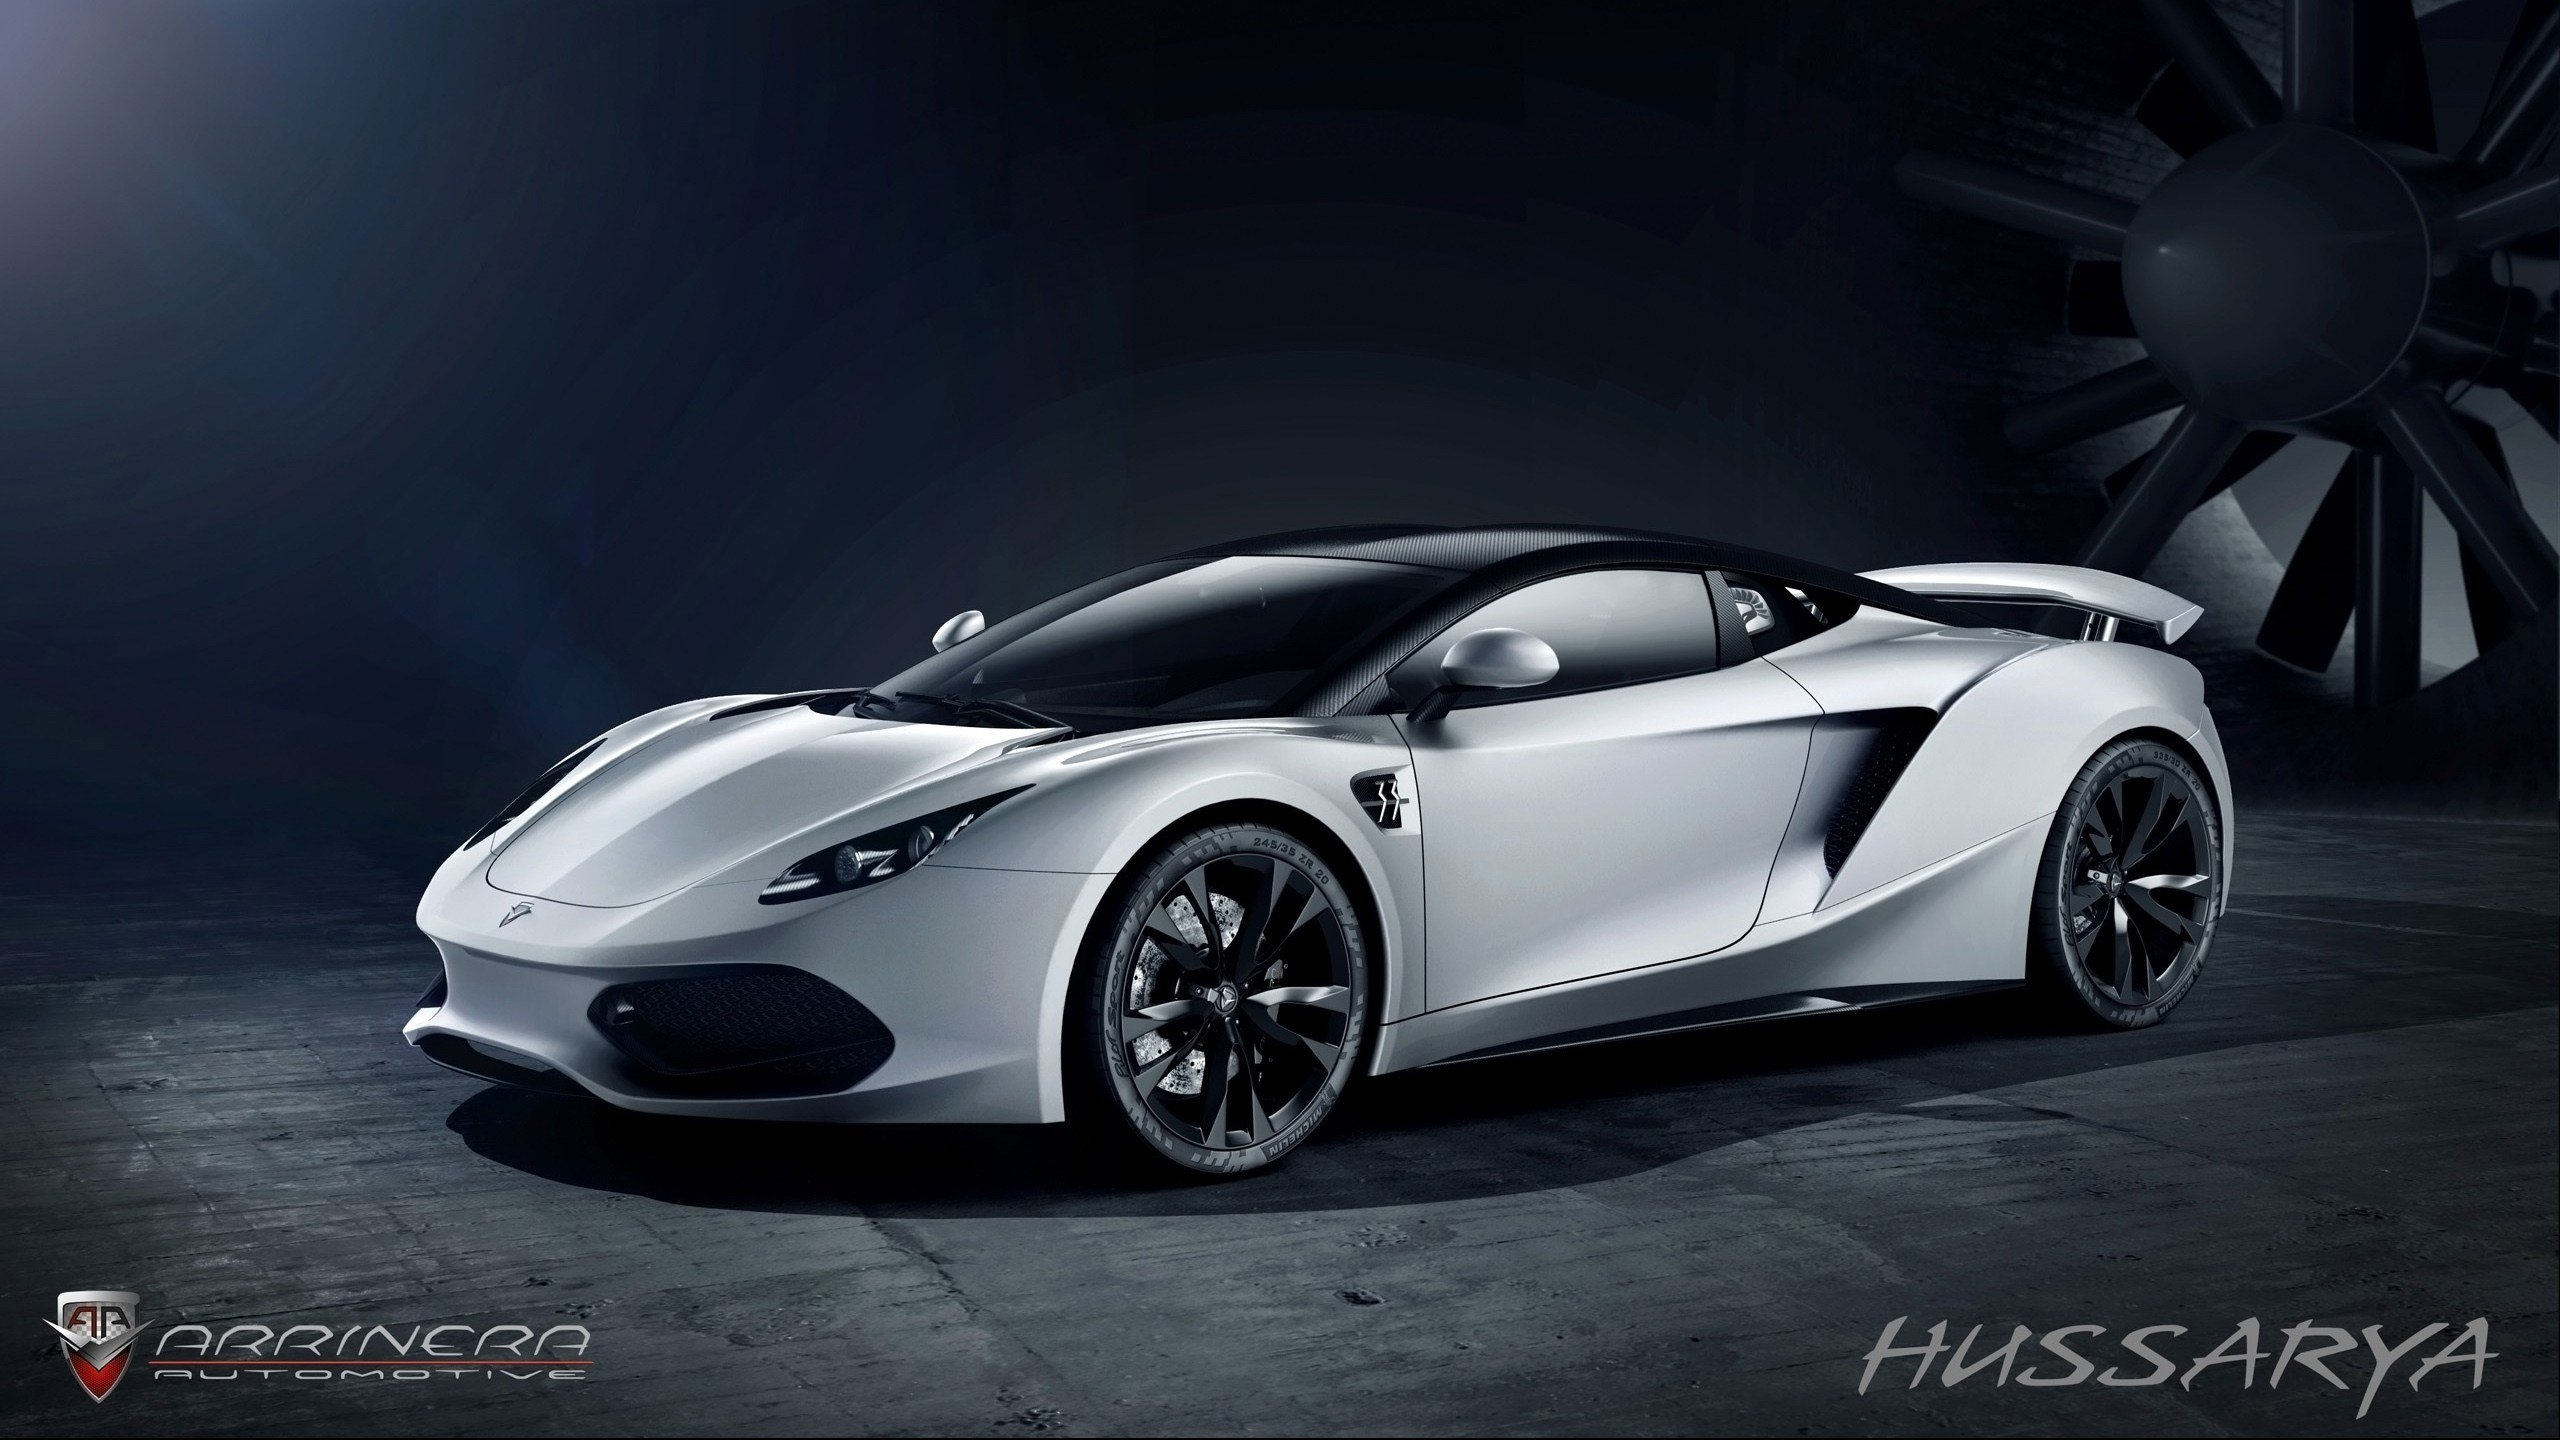 New Arrinera Hussarya 2014 Wallpaper Hd Car Wallpapers Id On This Month